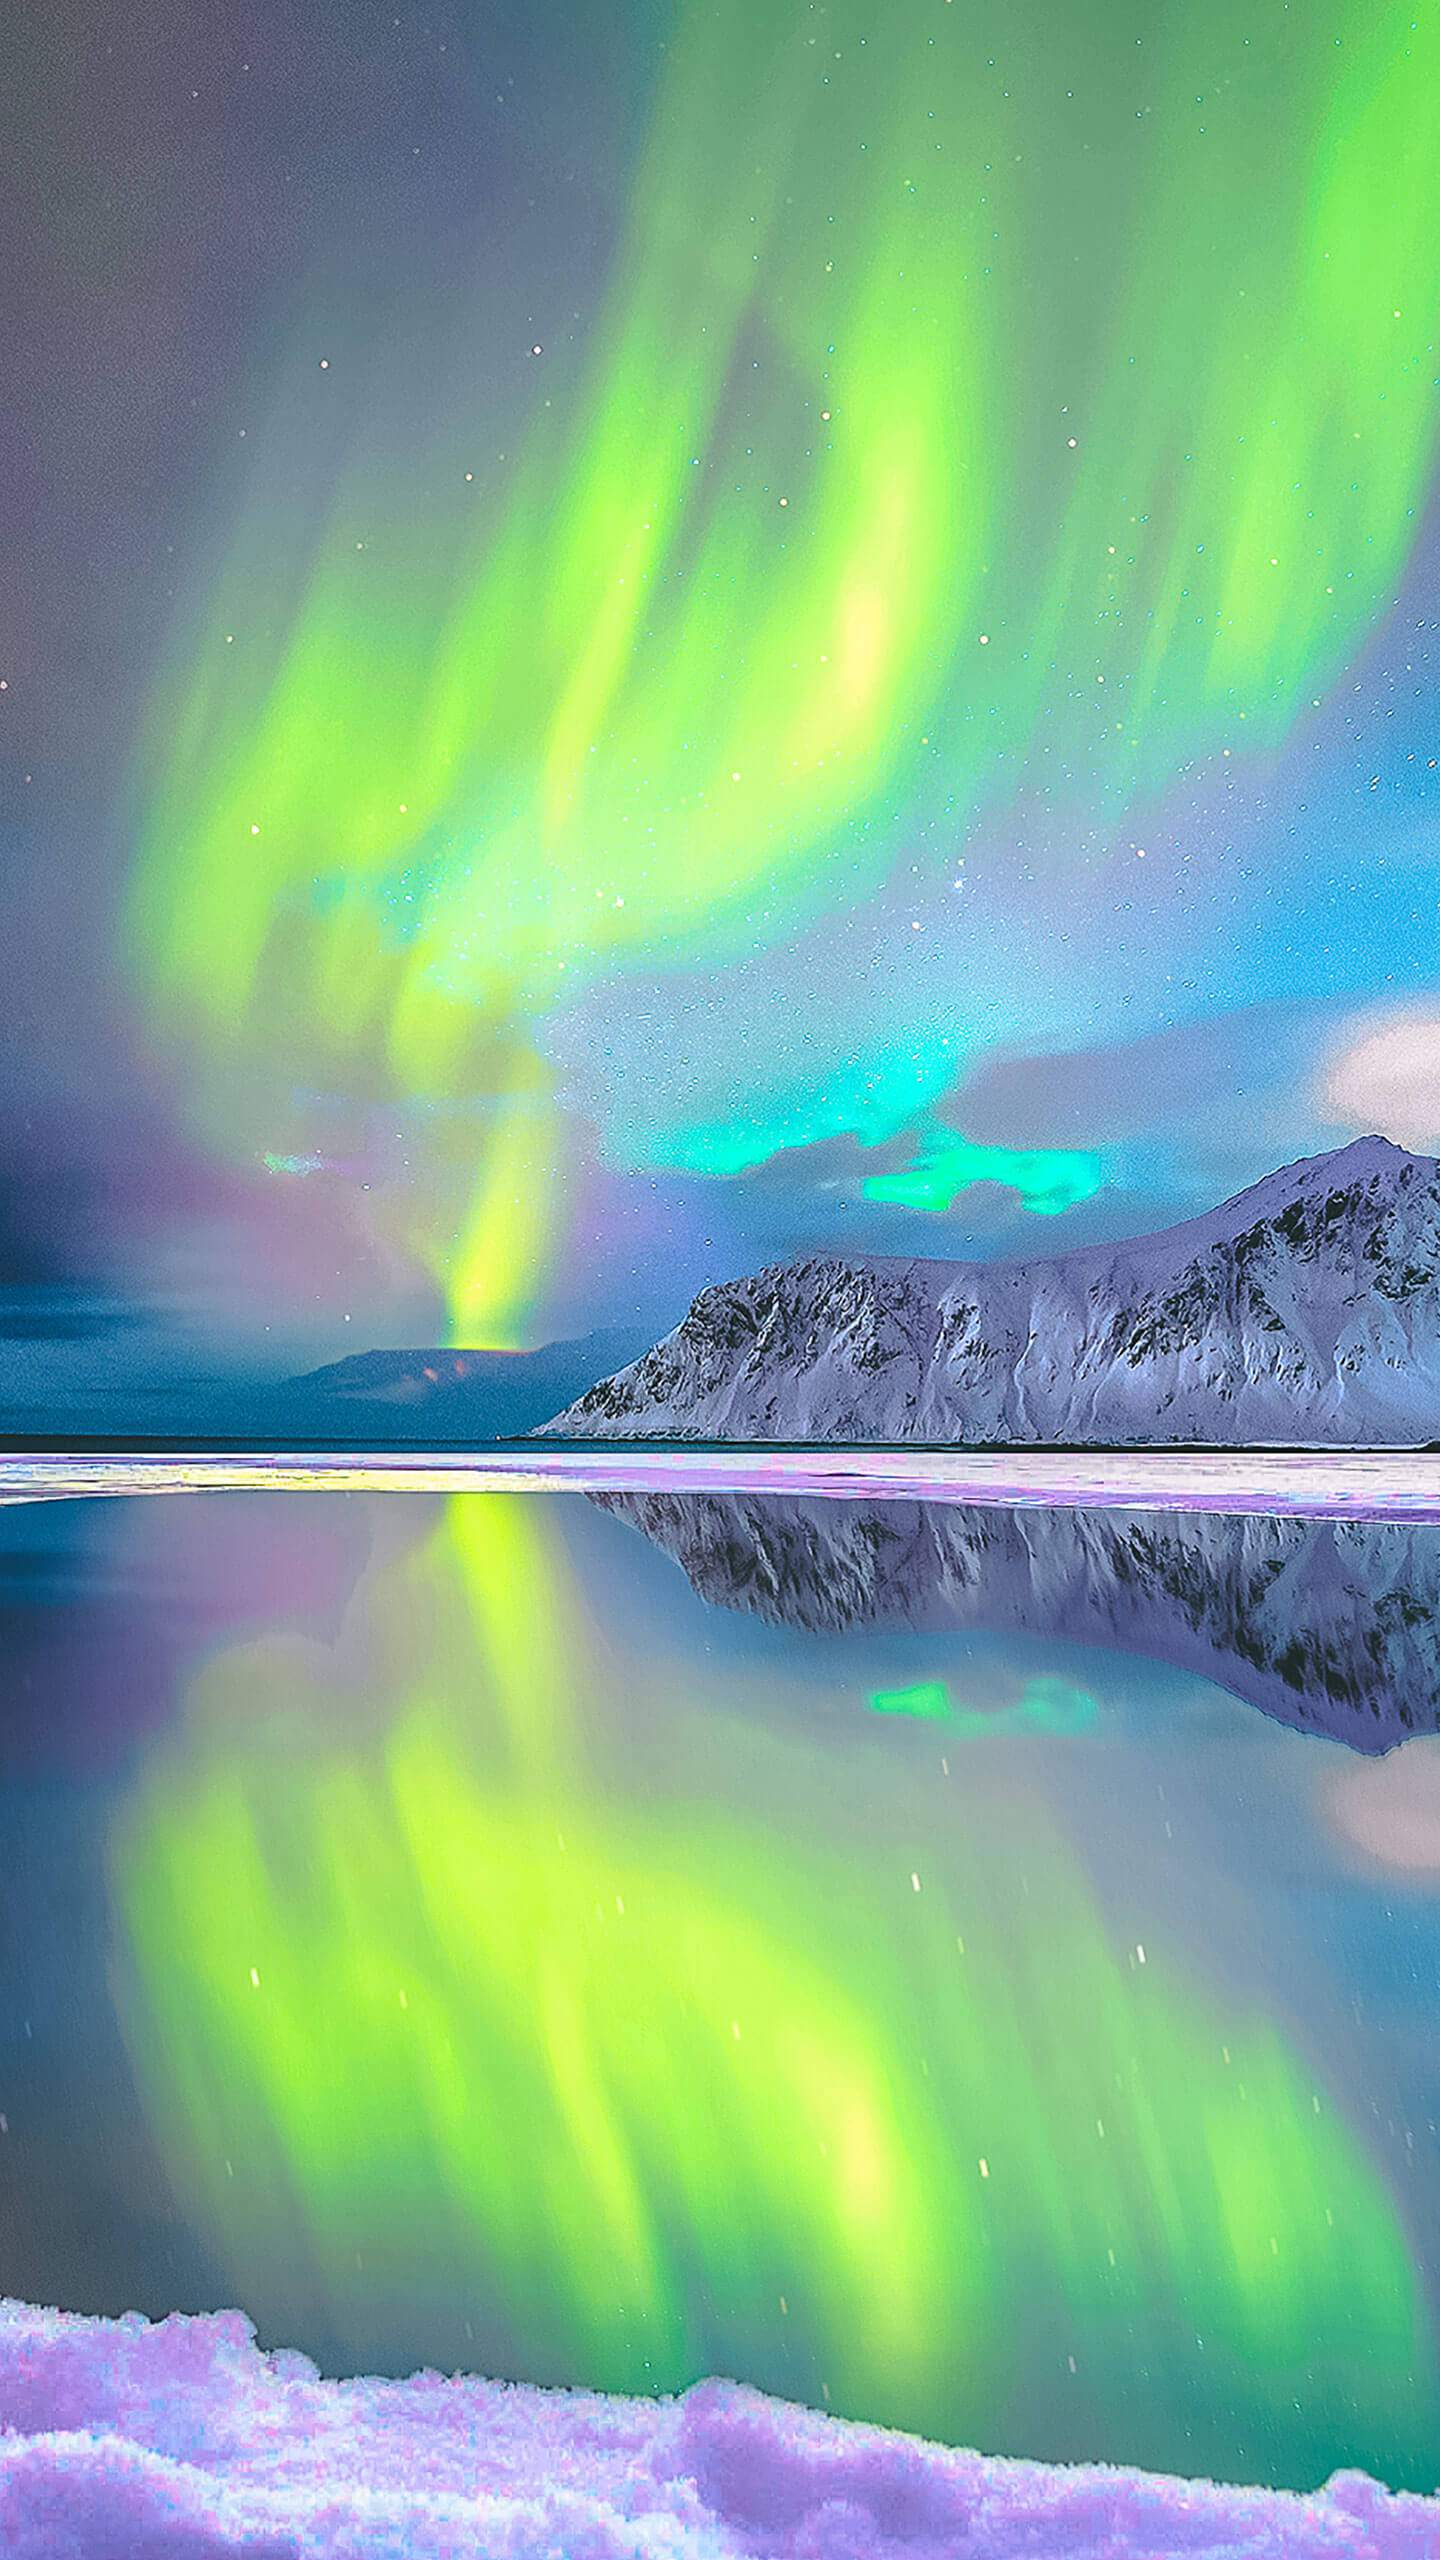 Halloween Wallpapers Cute Aurora Borealis Norway Iphone Wallpaper Iphone Wallpapers